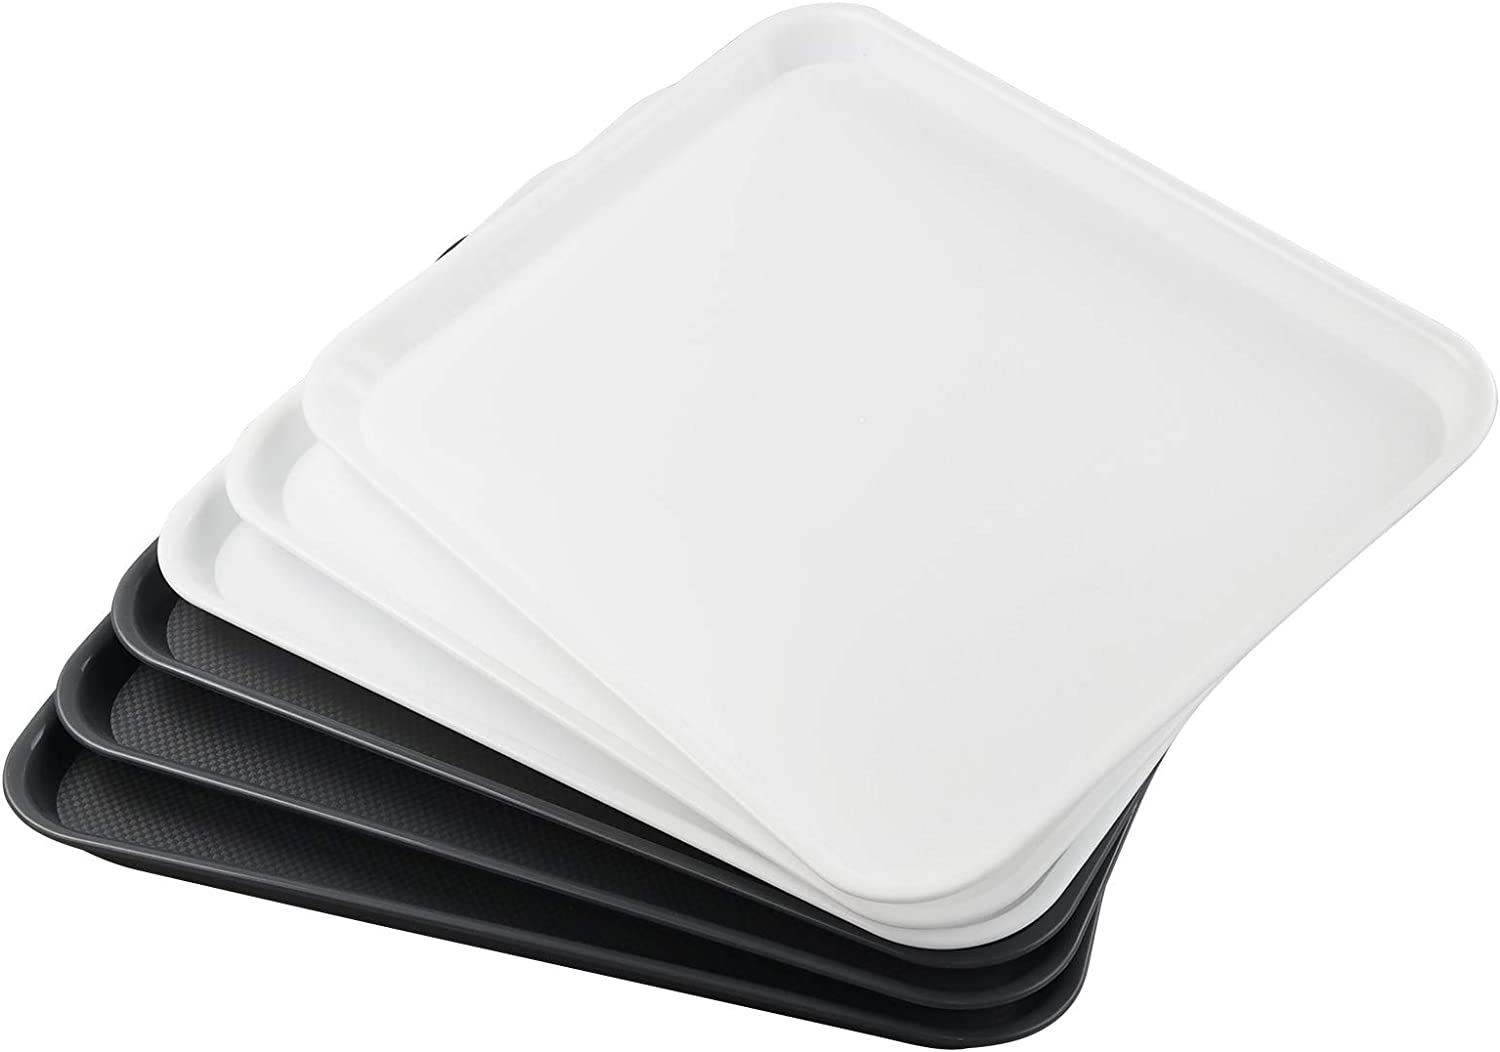 Waikhomes 6 Packs Plastic Food Serving Tray, Kitchen/Restaurant Dinner Serving Tray, White and Grey